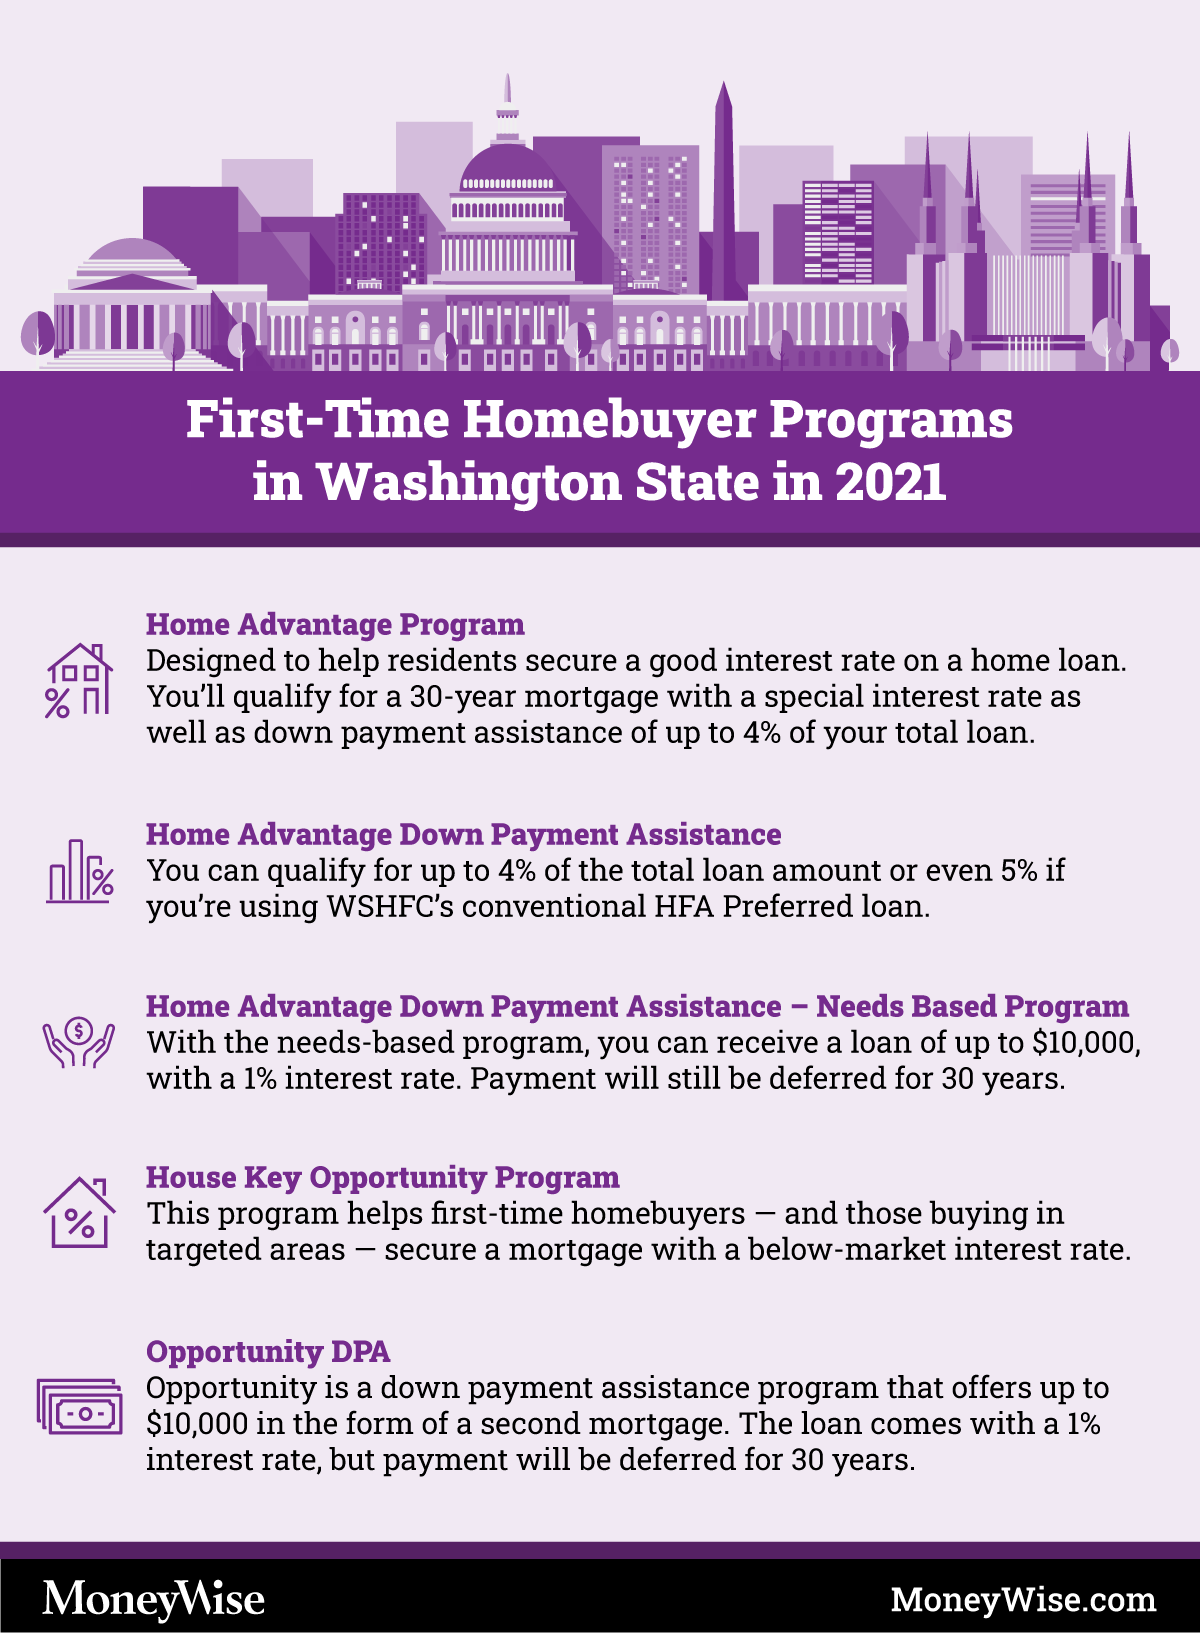 Infographic on programs for first-time home-buyers in Washington State